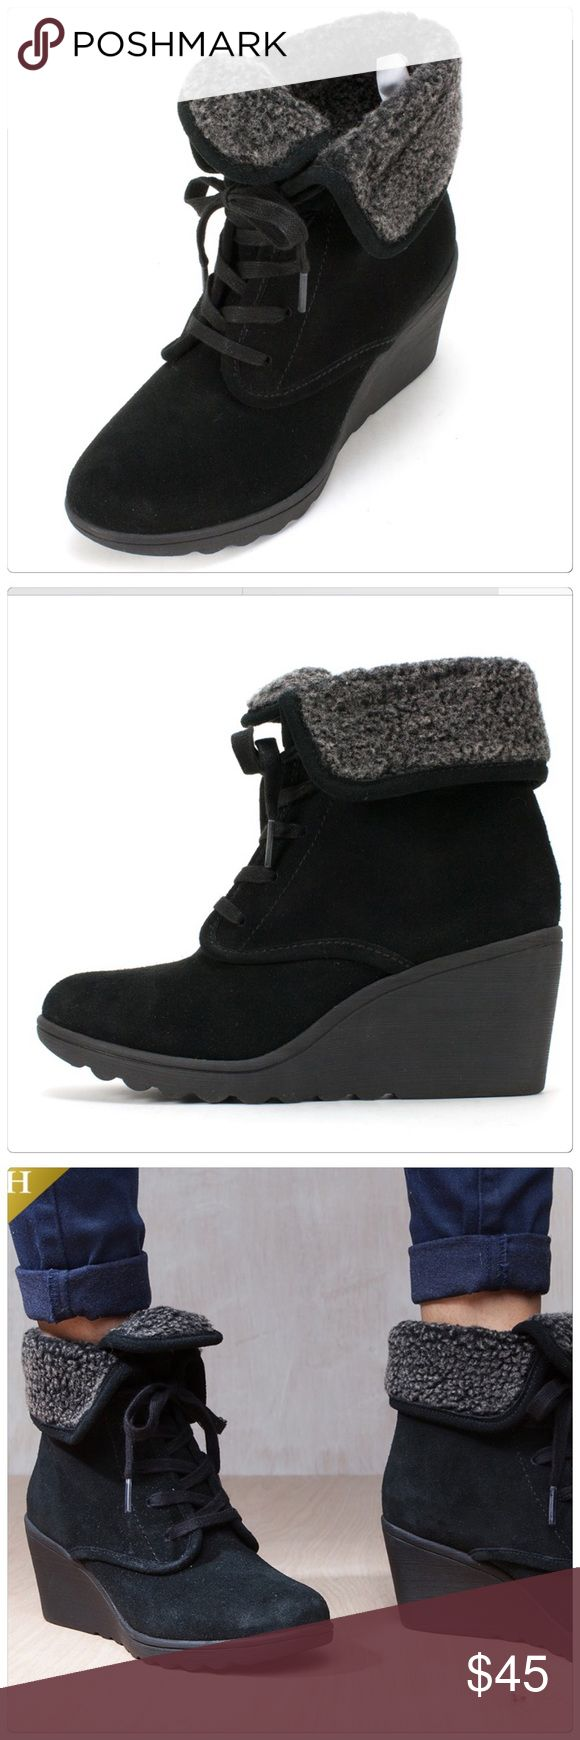 🆕 Black suede wedge boots White Mountain black suede wedge boots. Very comfortable! Size 6. Brand new. White Mountain Shoes Lace Up Boots